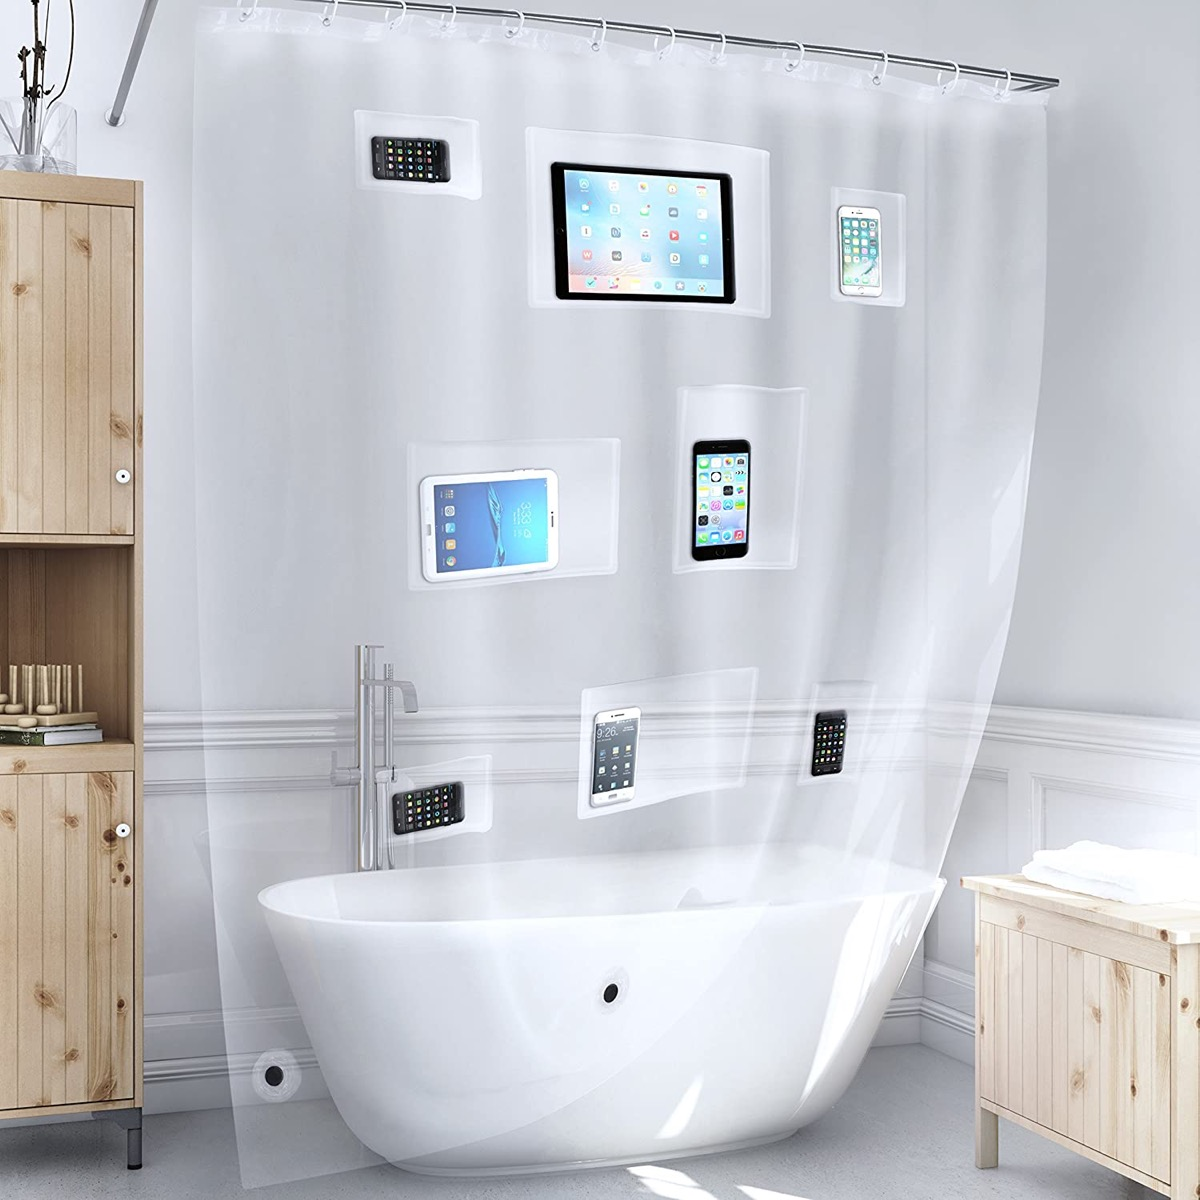 clear shower curtain with pockets and ipads